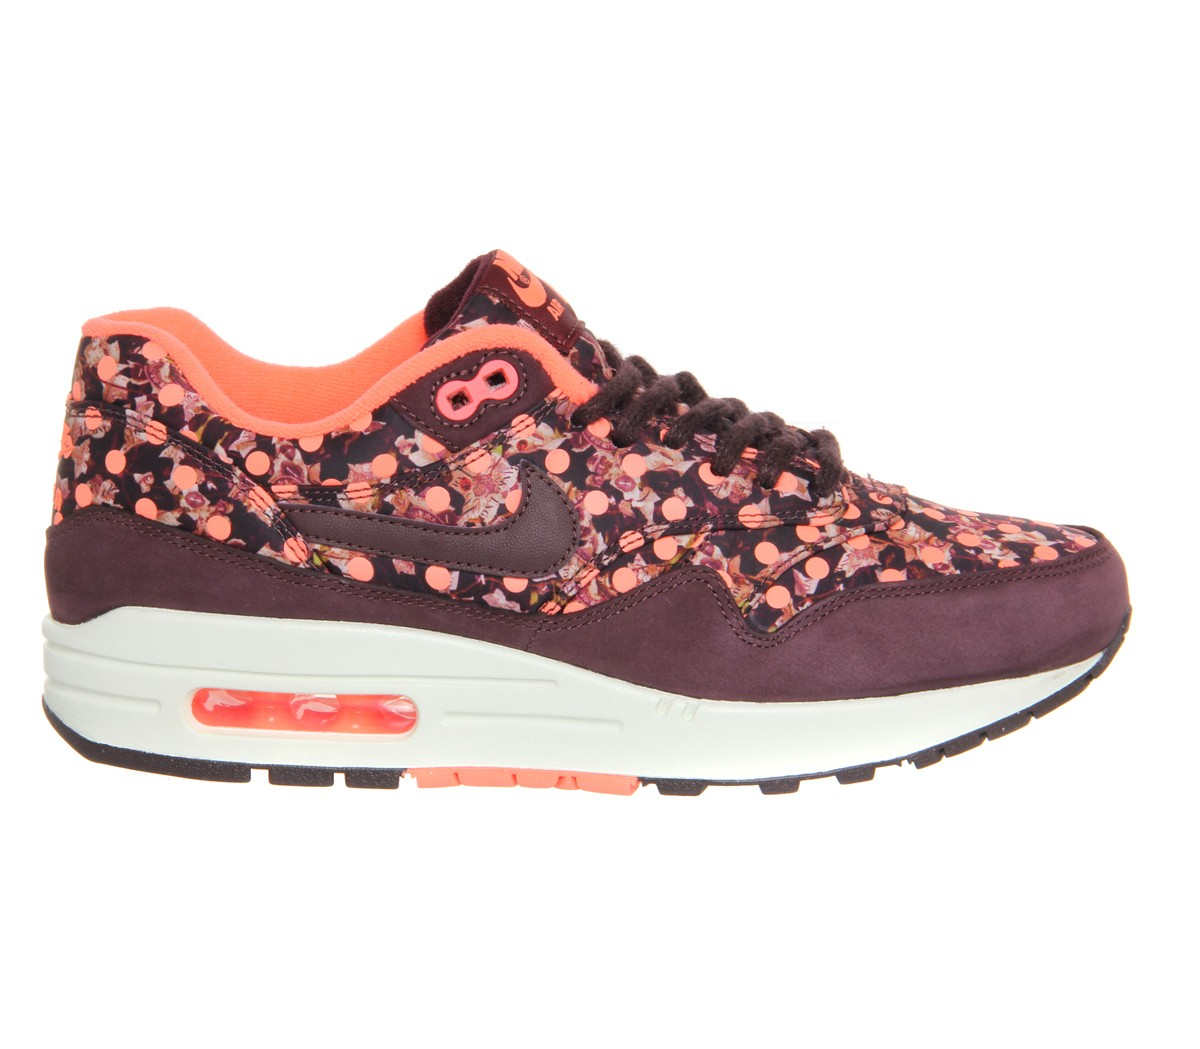 Nike WMNS Air Max 1 (I) Shoes Womens Liberty/Deep Burgundy/Bright Mango/Sail 540855-600